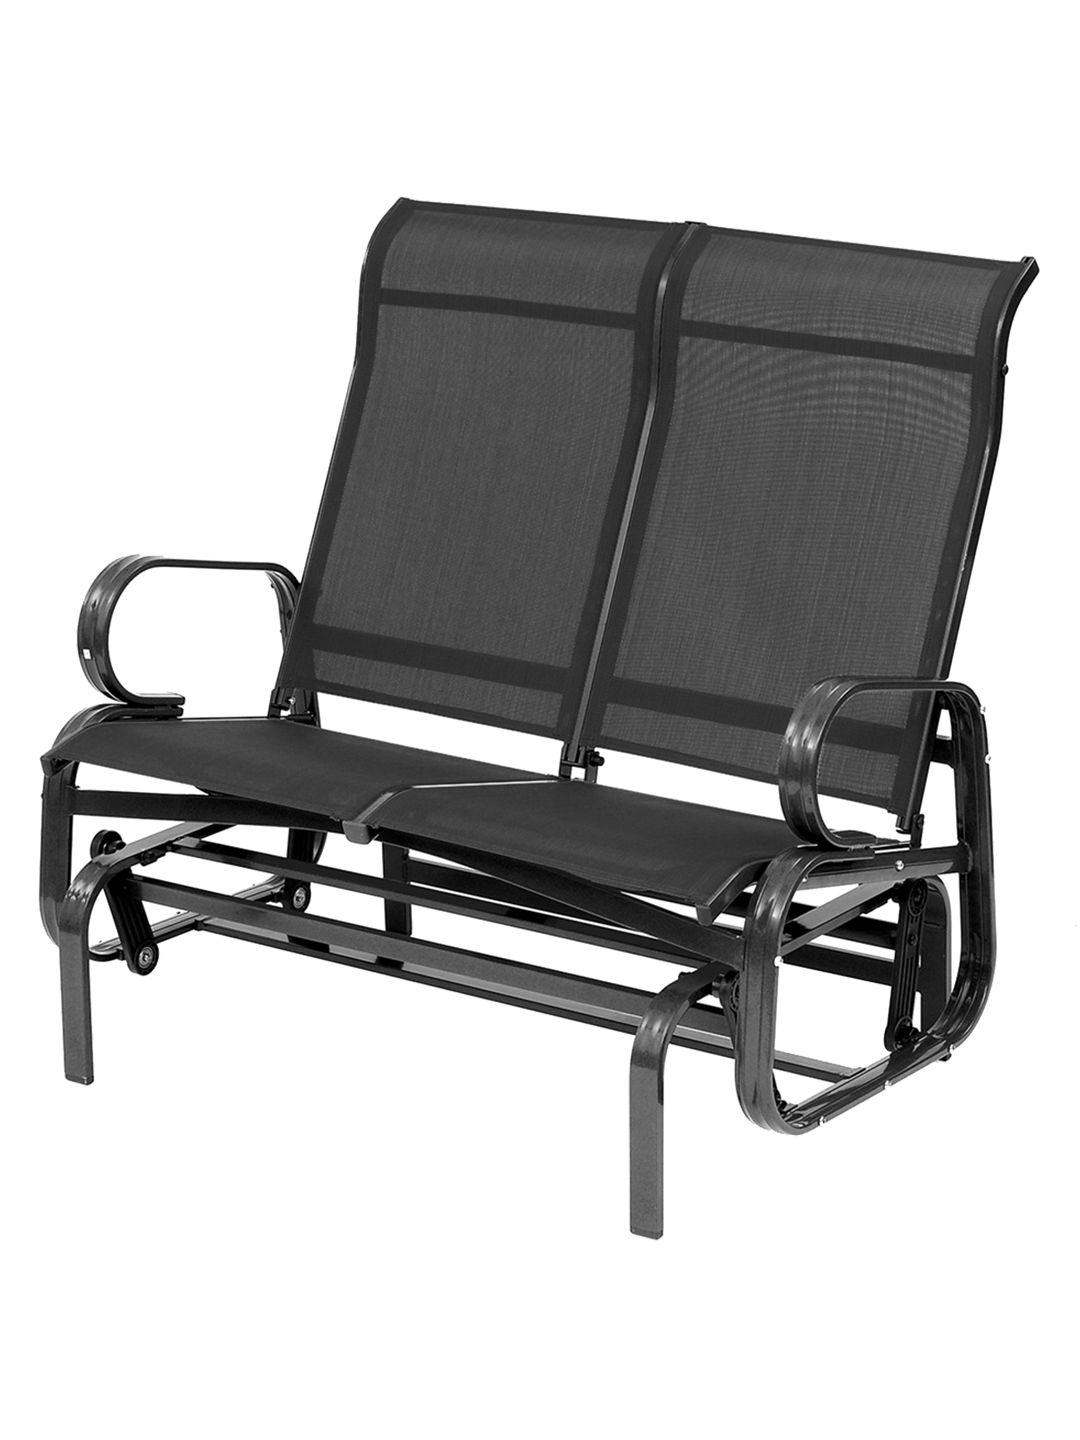 Havana Twin Seat Glidertrans Continental At Gilt | Black Regarding Twin Seat Glider Benches (View 5 of 25)